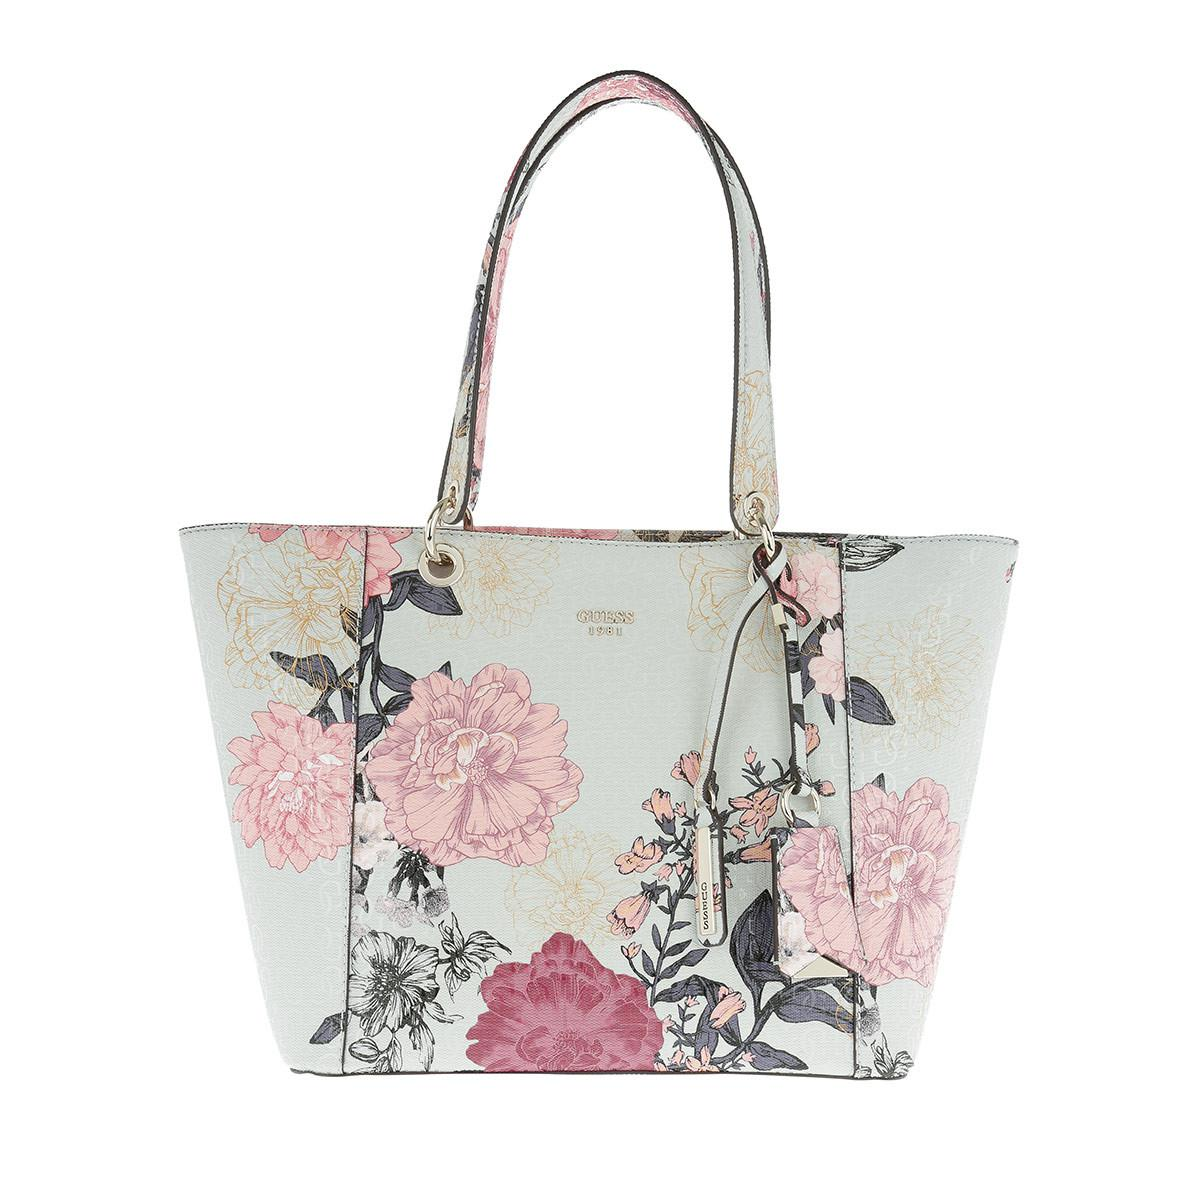 05a784a37868 Guess Kamryn Tote Grey Floral in Gray - Lyst